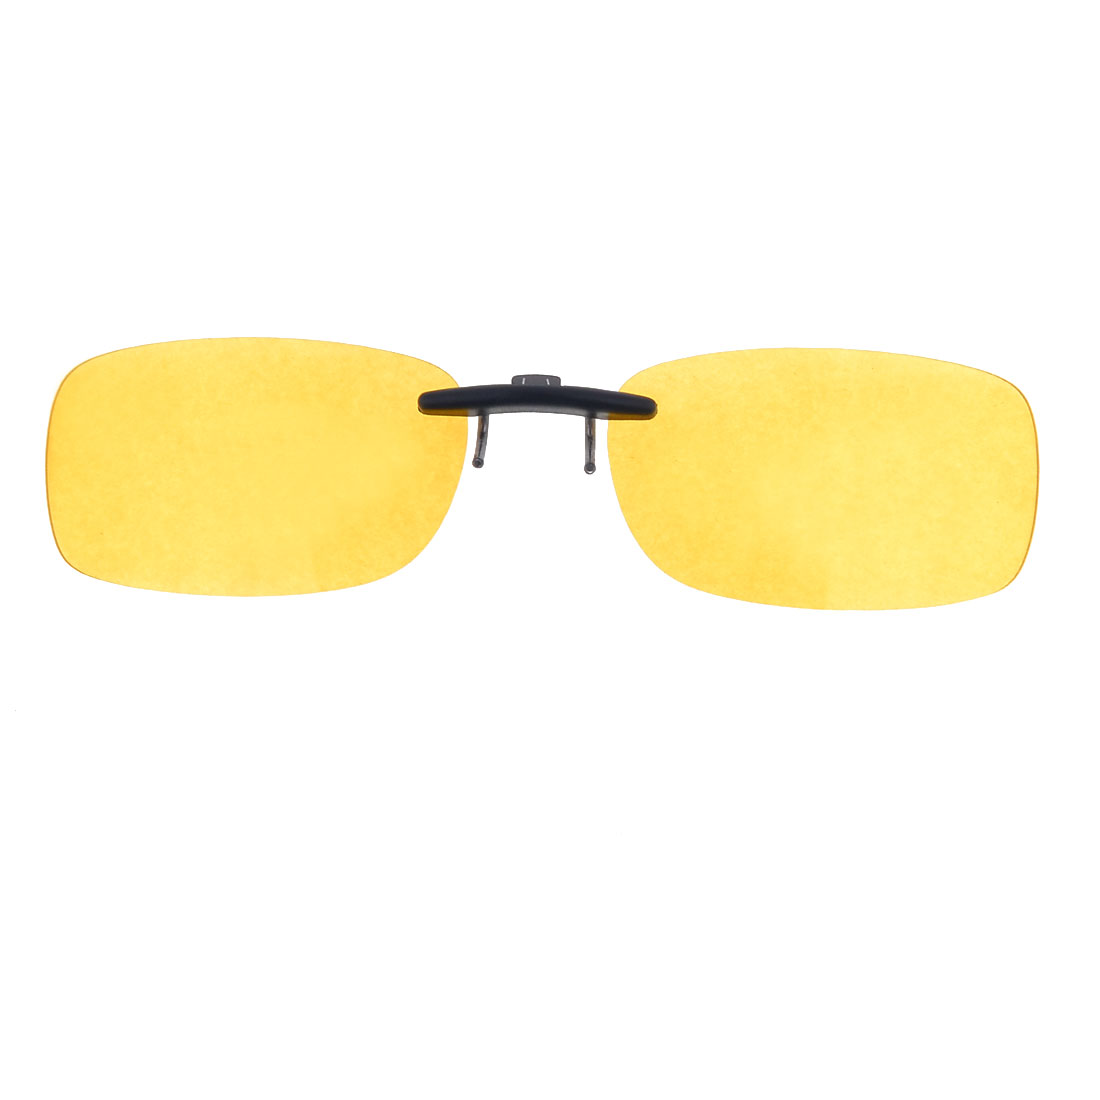 Outdoor Sports Unisex Plastic Polarized Lens Clip On Sunglasses Clear Yellow